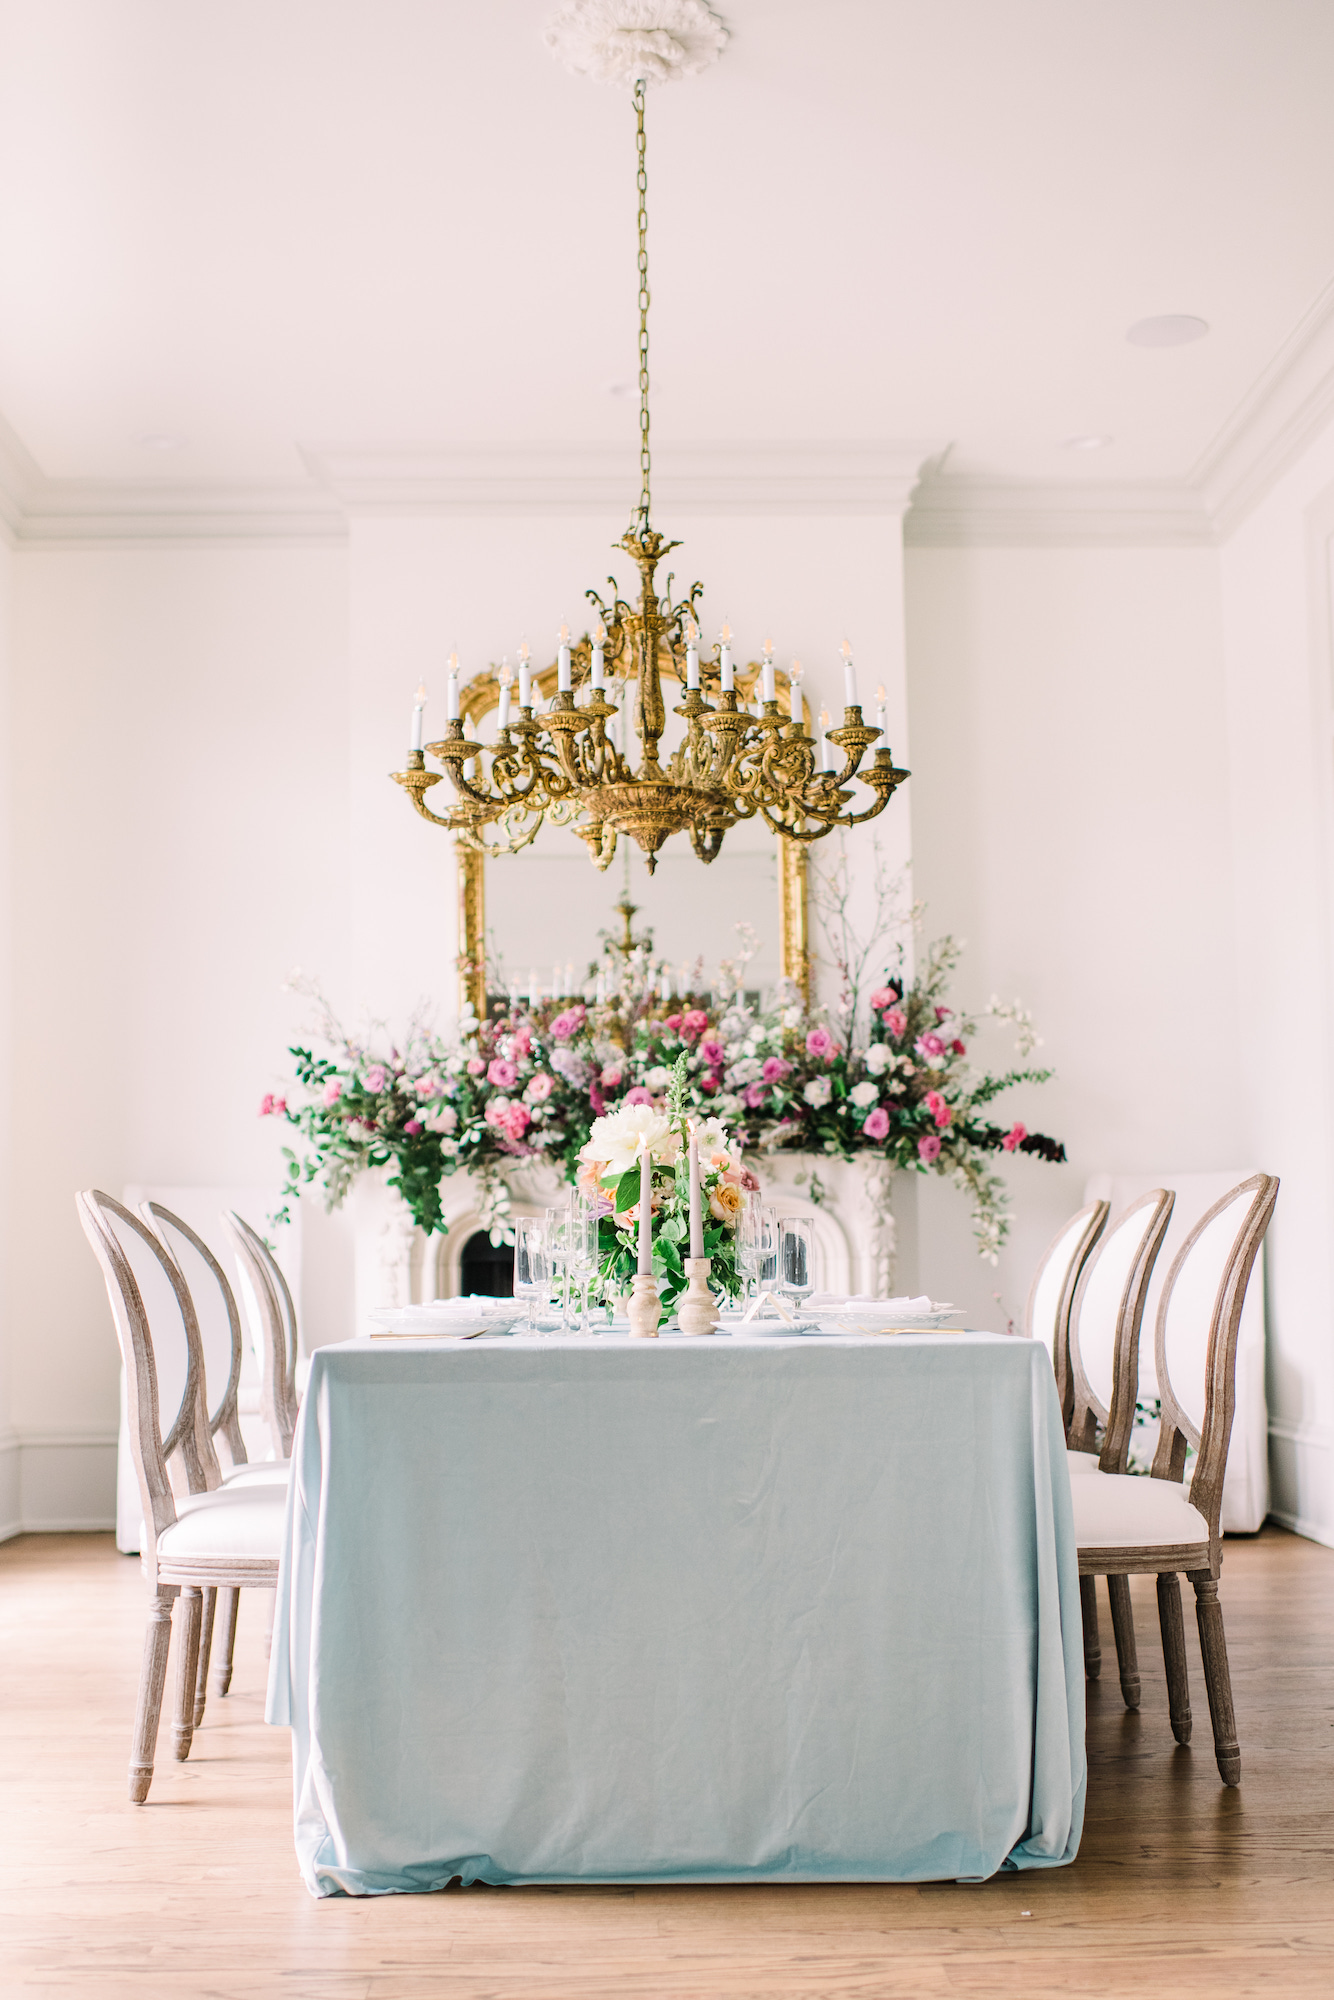 Floral design by KIM TYLER |  SOJOURN WEDDINGS  at  THE CREATIVE CHATEAU  in Houston, Texas. Photo by  KAITI MOYERS PHOTOGRAPHY .